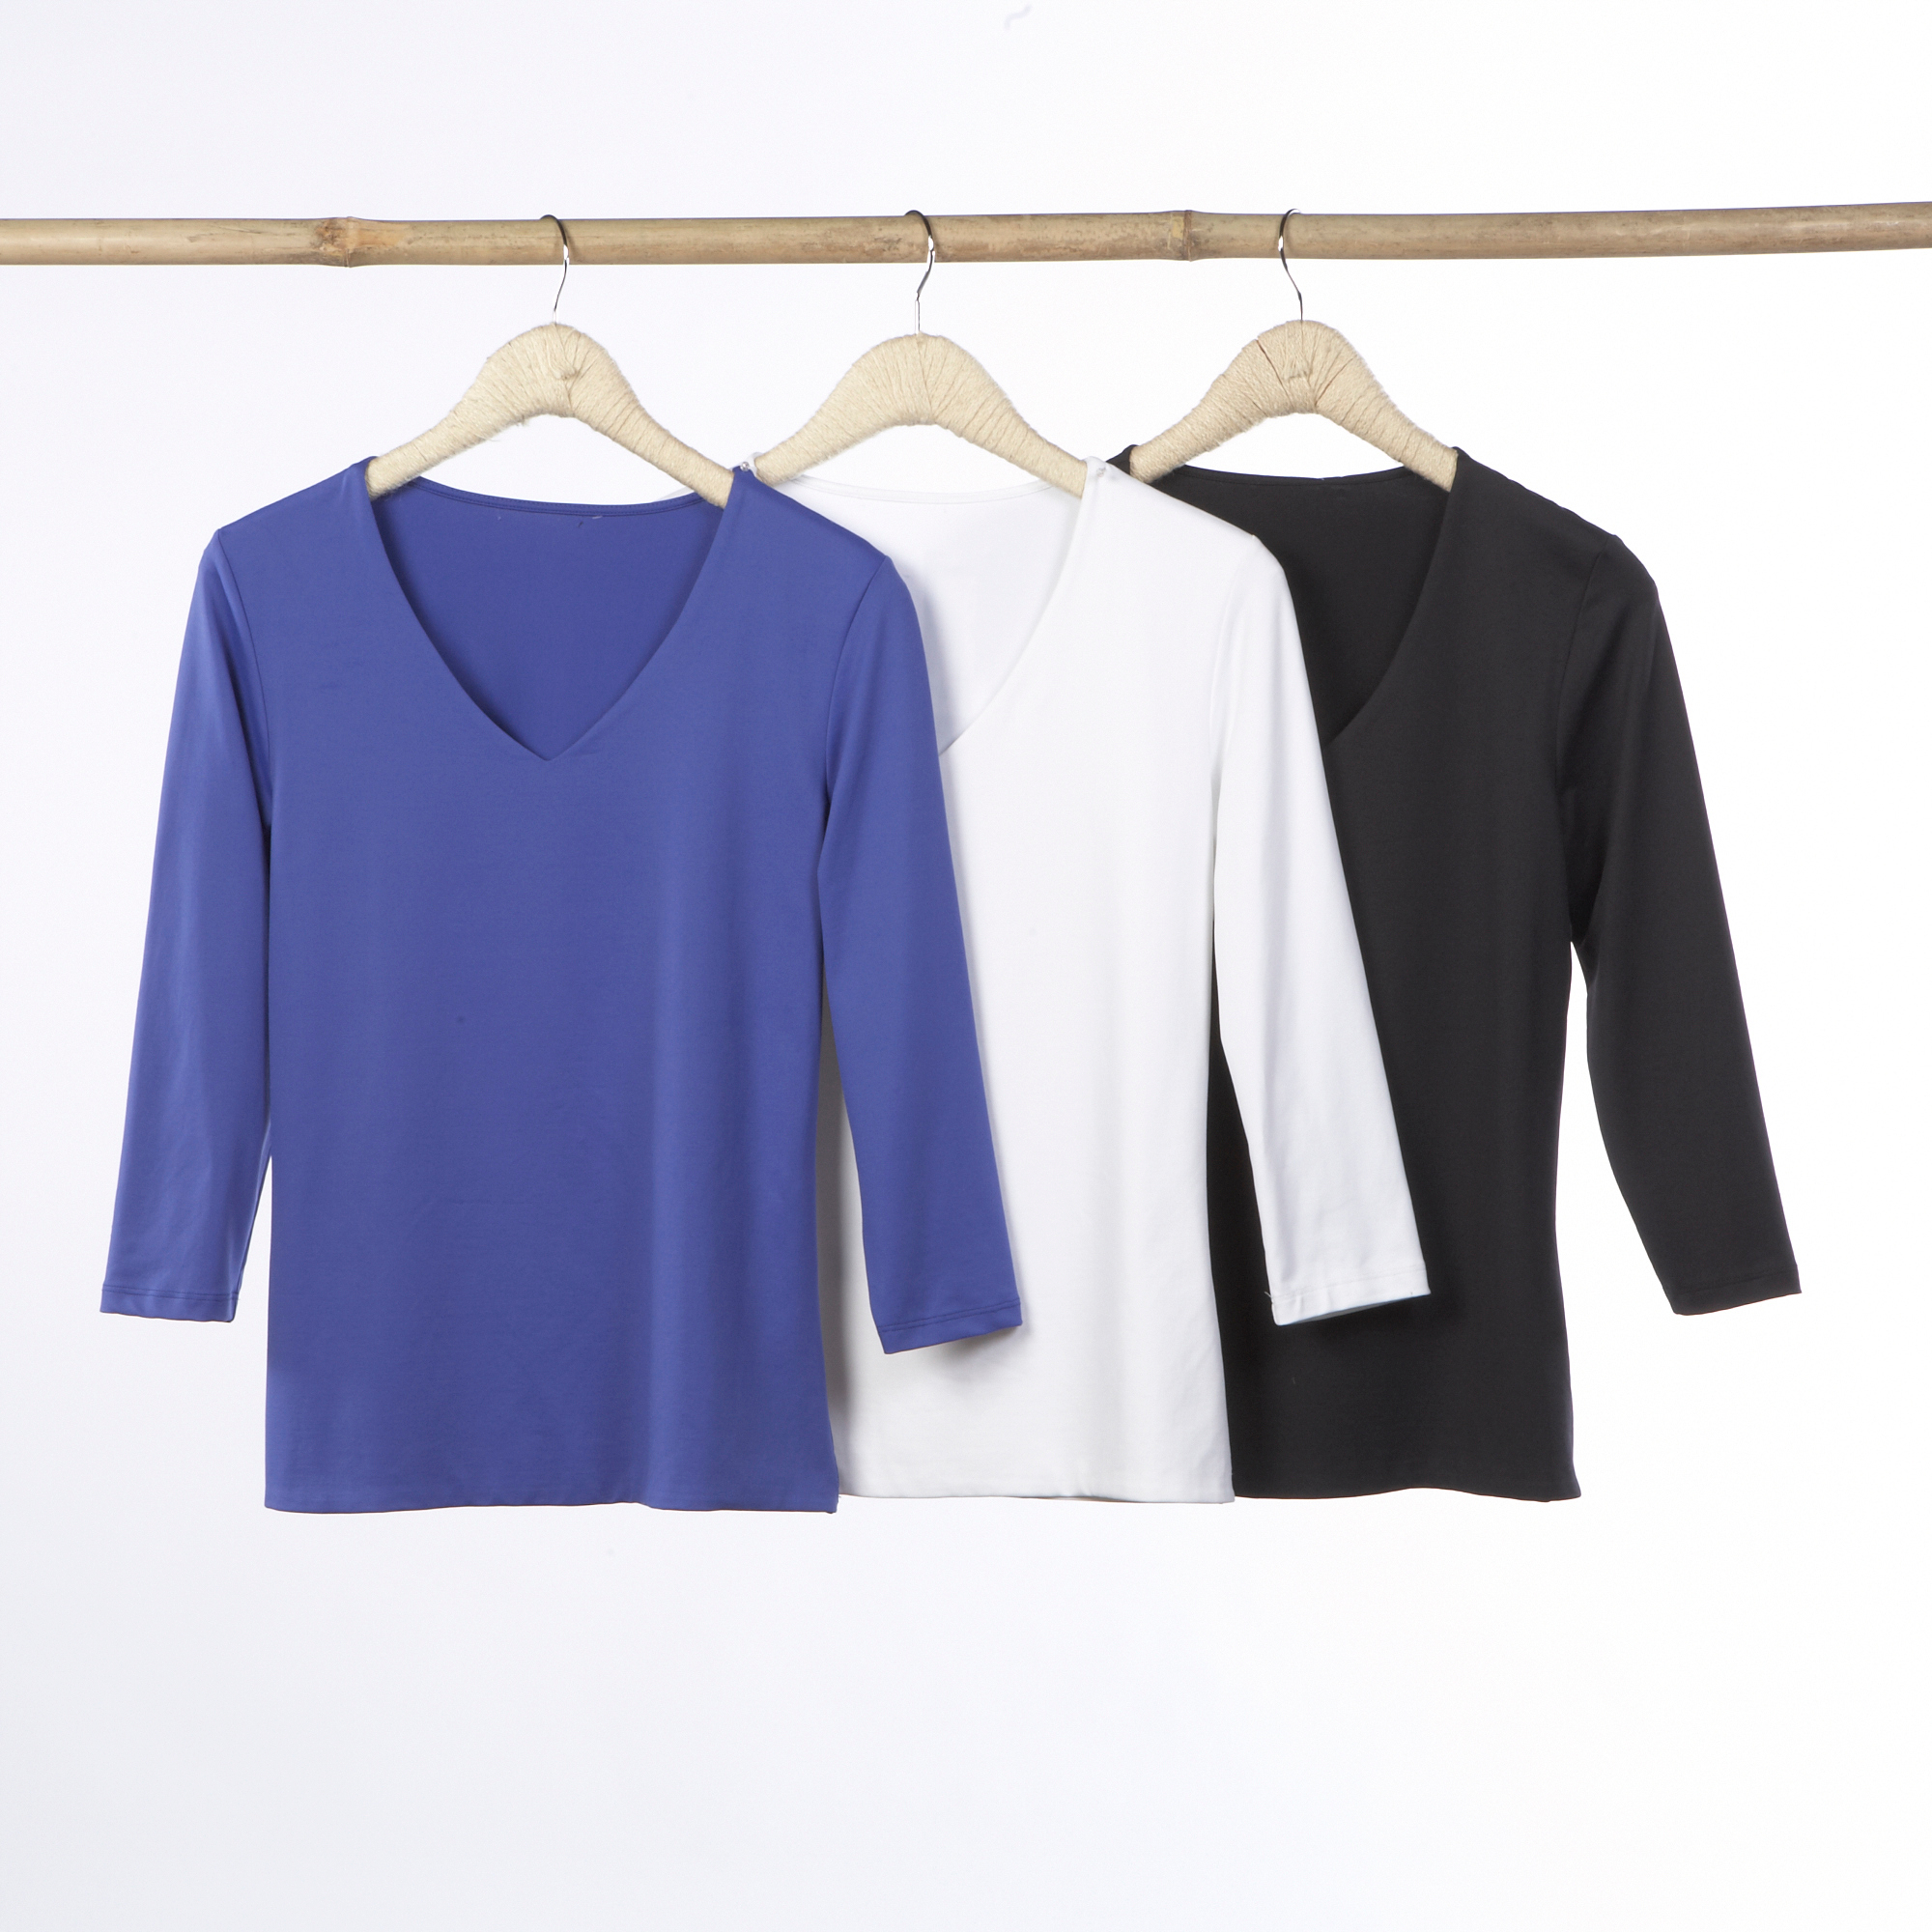 The Relaxed V-Neck Top